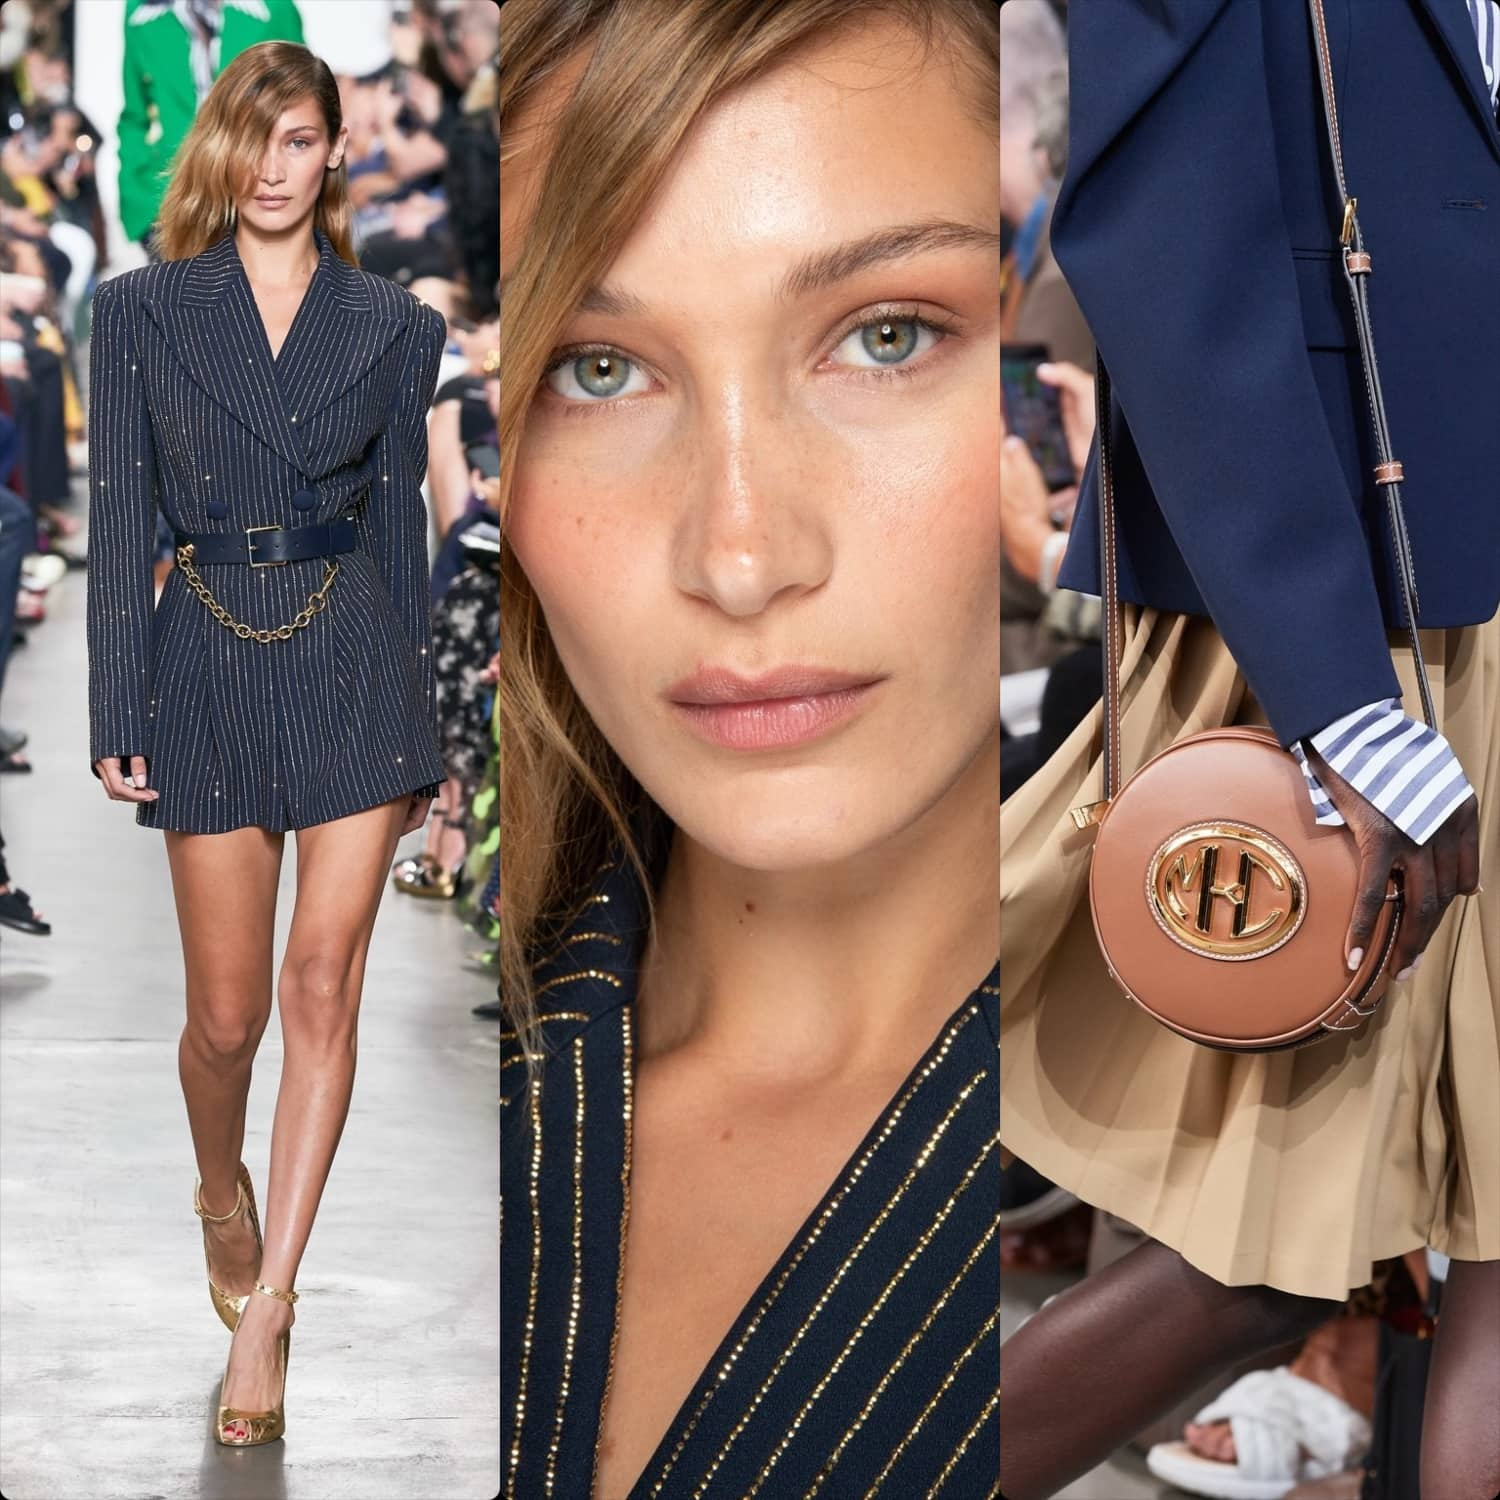 Michael Kors Spring Summer 2020 New York. Bella Hadid. RUNWAY MAGAZINE ® Collections. RUNWAY NOW / RUNWAY NEW